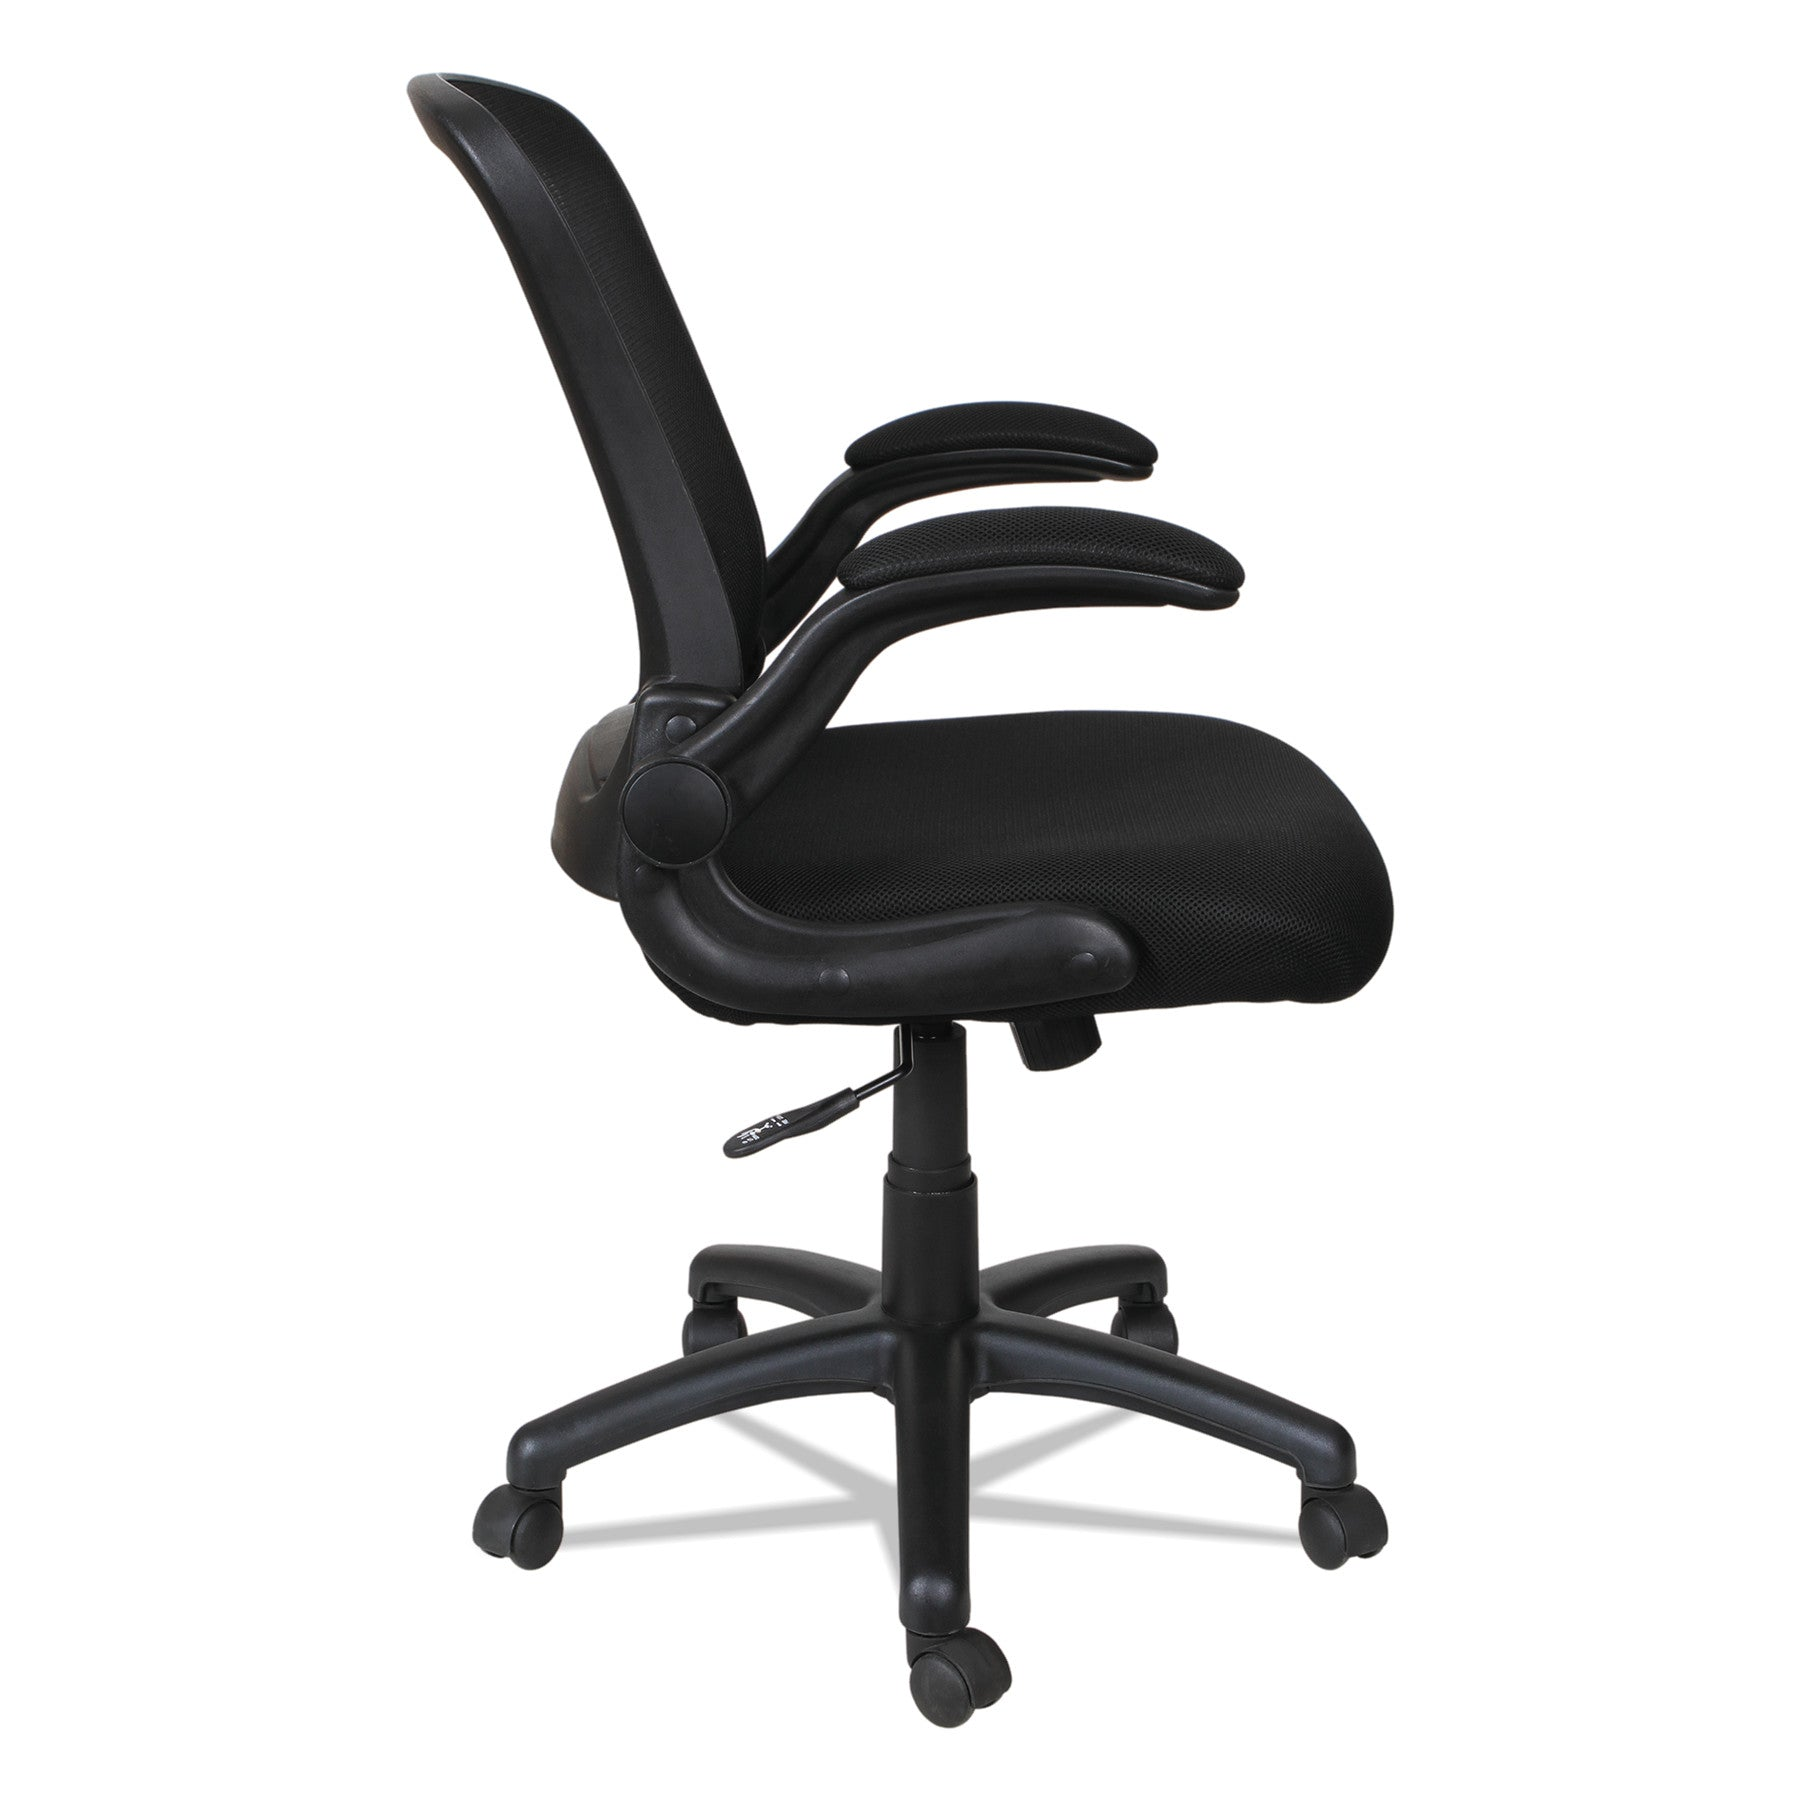 Smugdesk Tilt Mid-Back Mesh Chair, Supports up to 275 lbs Black